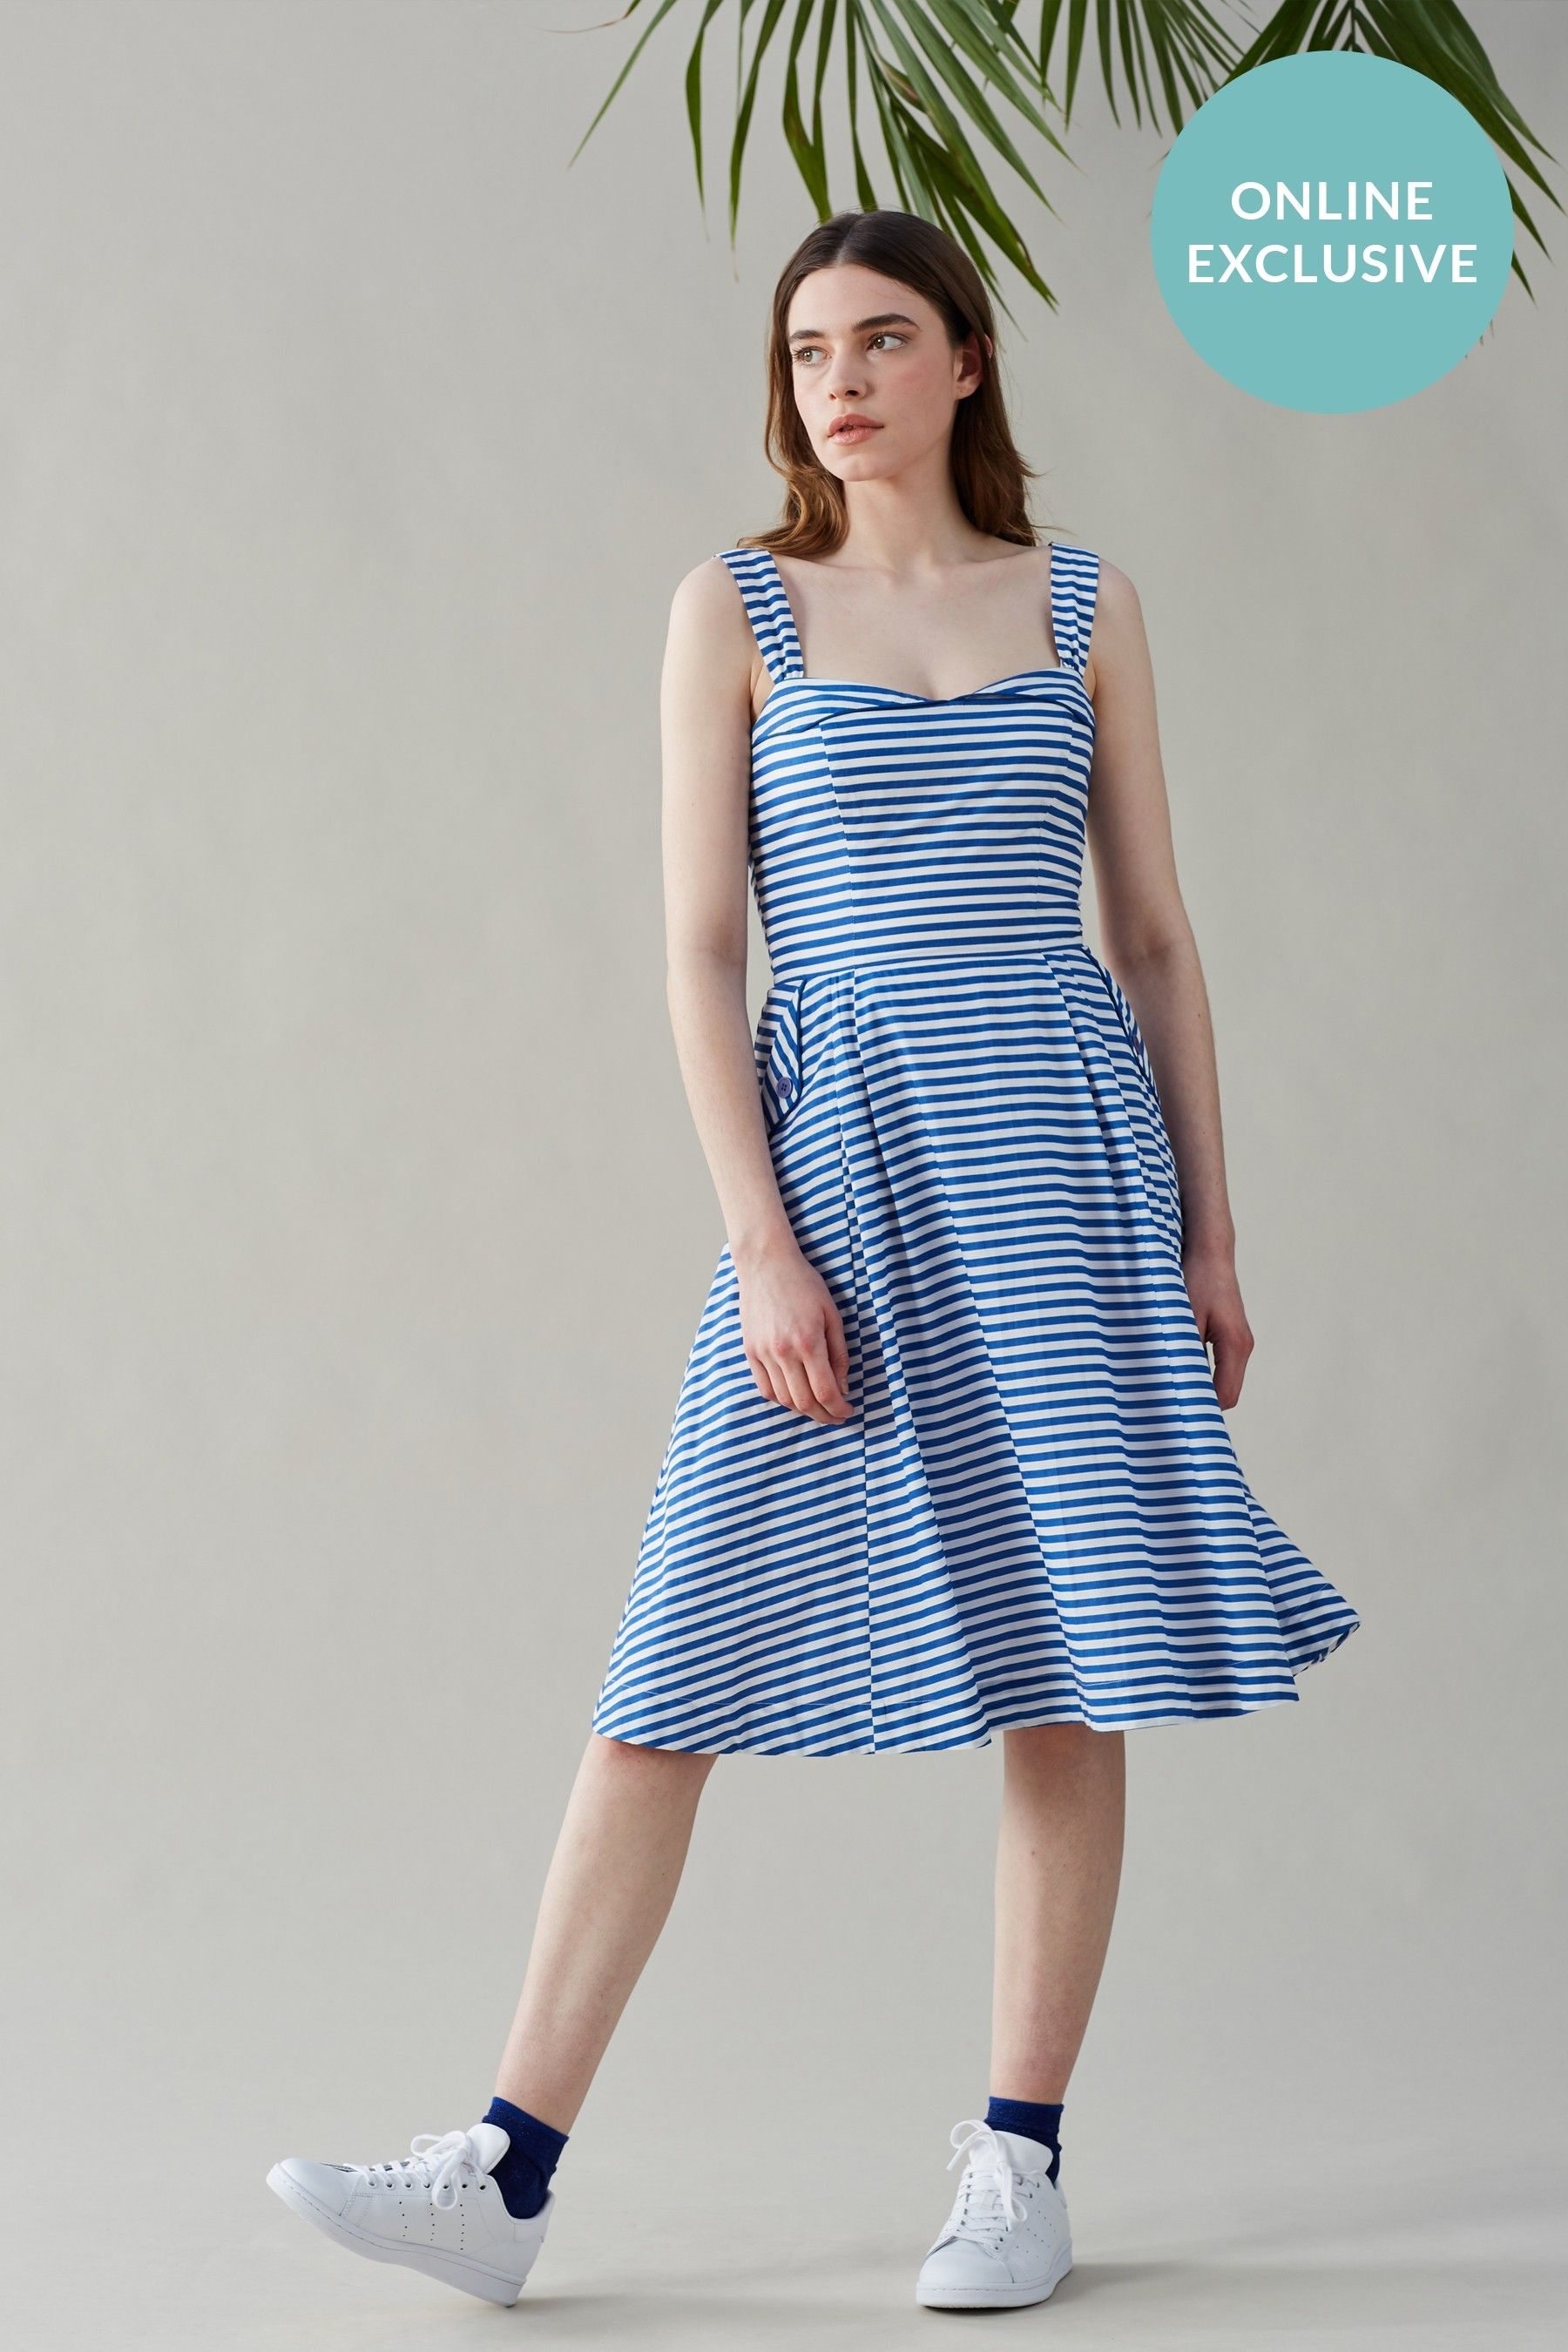 Buy Pippa Blue Stripe Summer Dress from luxury boutiques at